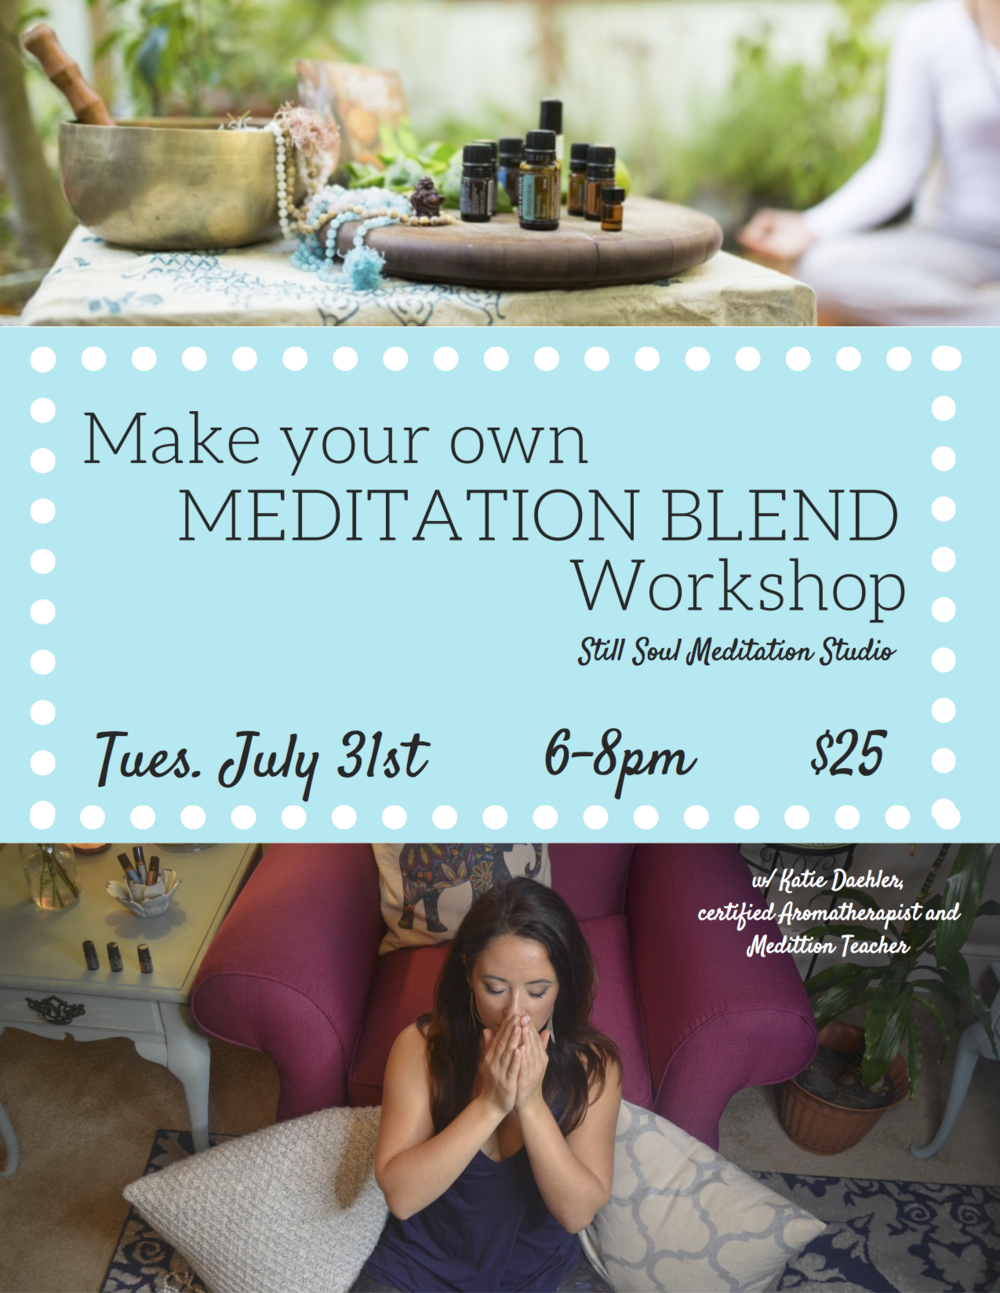 Join us on Tuesday, July 31st, from 6-8pm for a special workshop with our aromatherapist, Katie Daehler, on making your own essential oil blend for meditation! Katie will be leading us through how to use essential oils for meditation and helping you to create your own unique blend. This workshop costs $25.